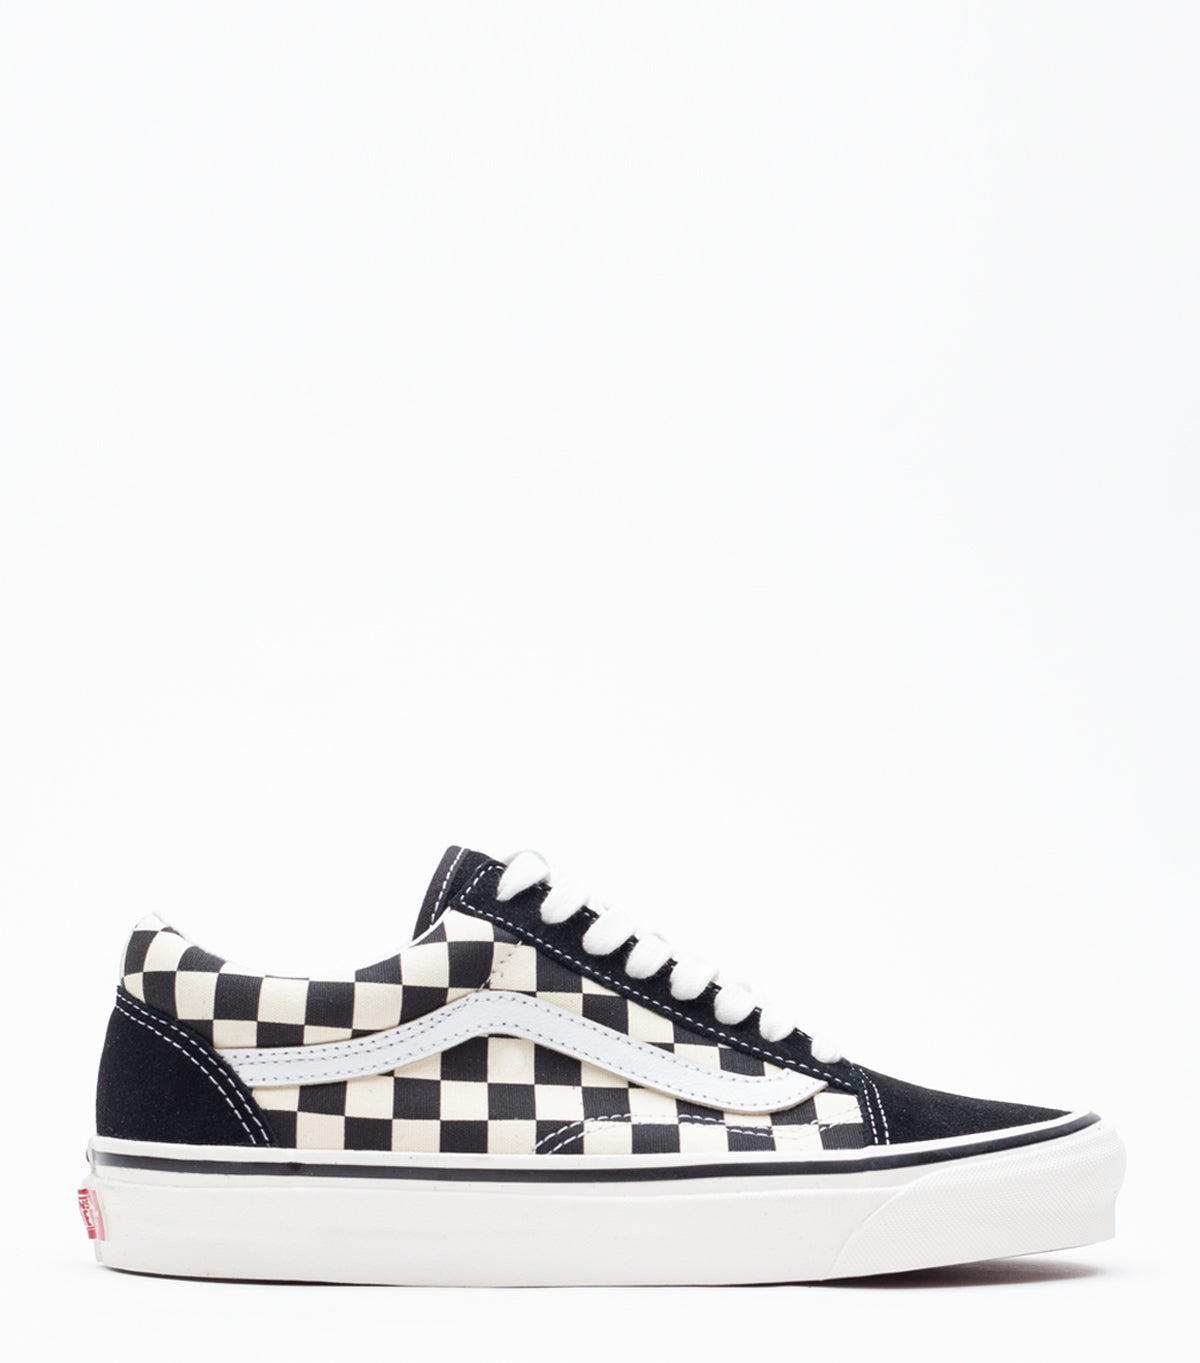 Vans Anaheim Factory Old Skool 36 DX Checkerboard